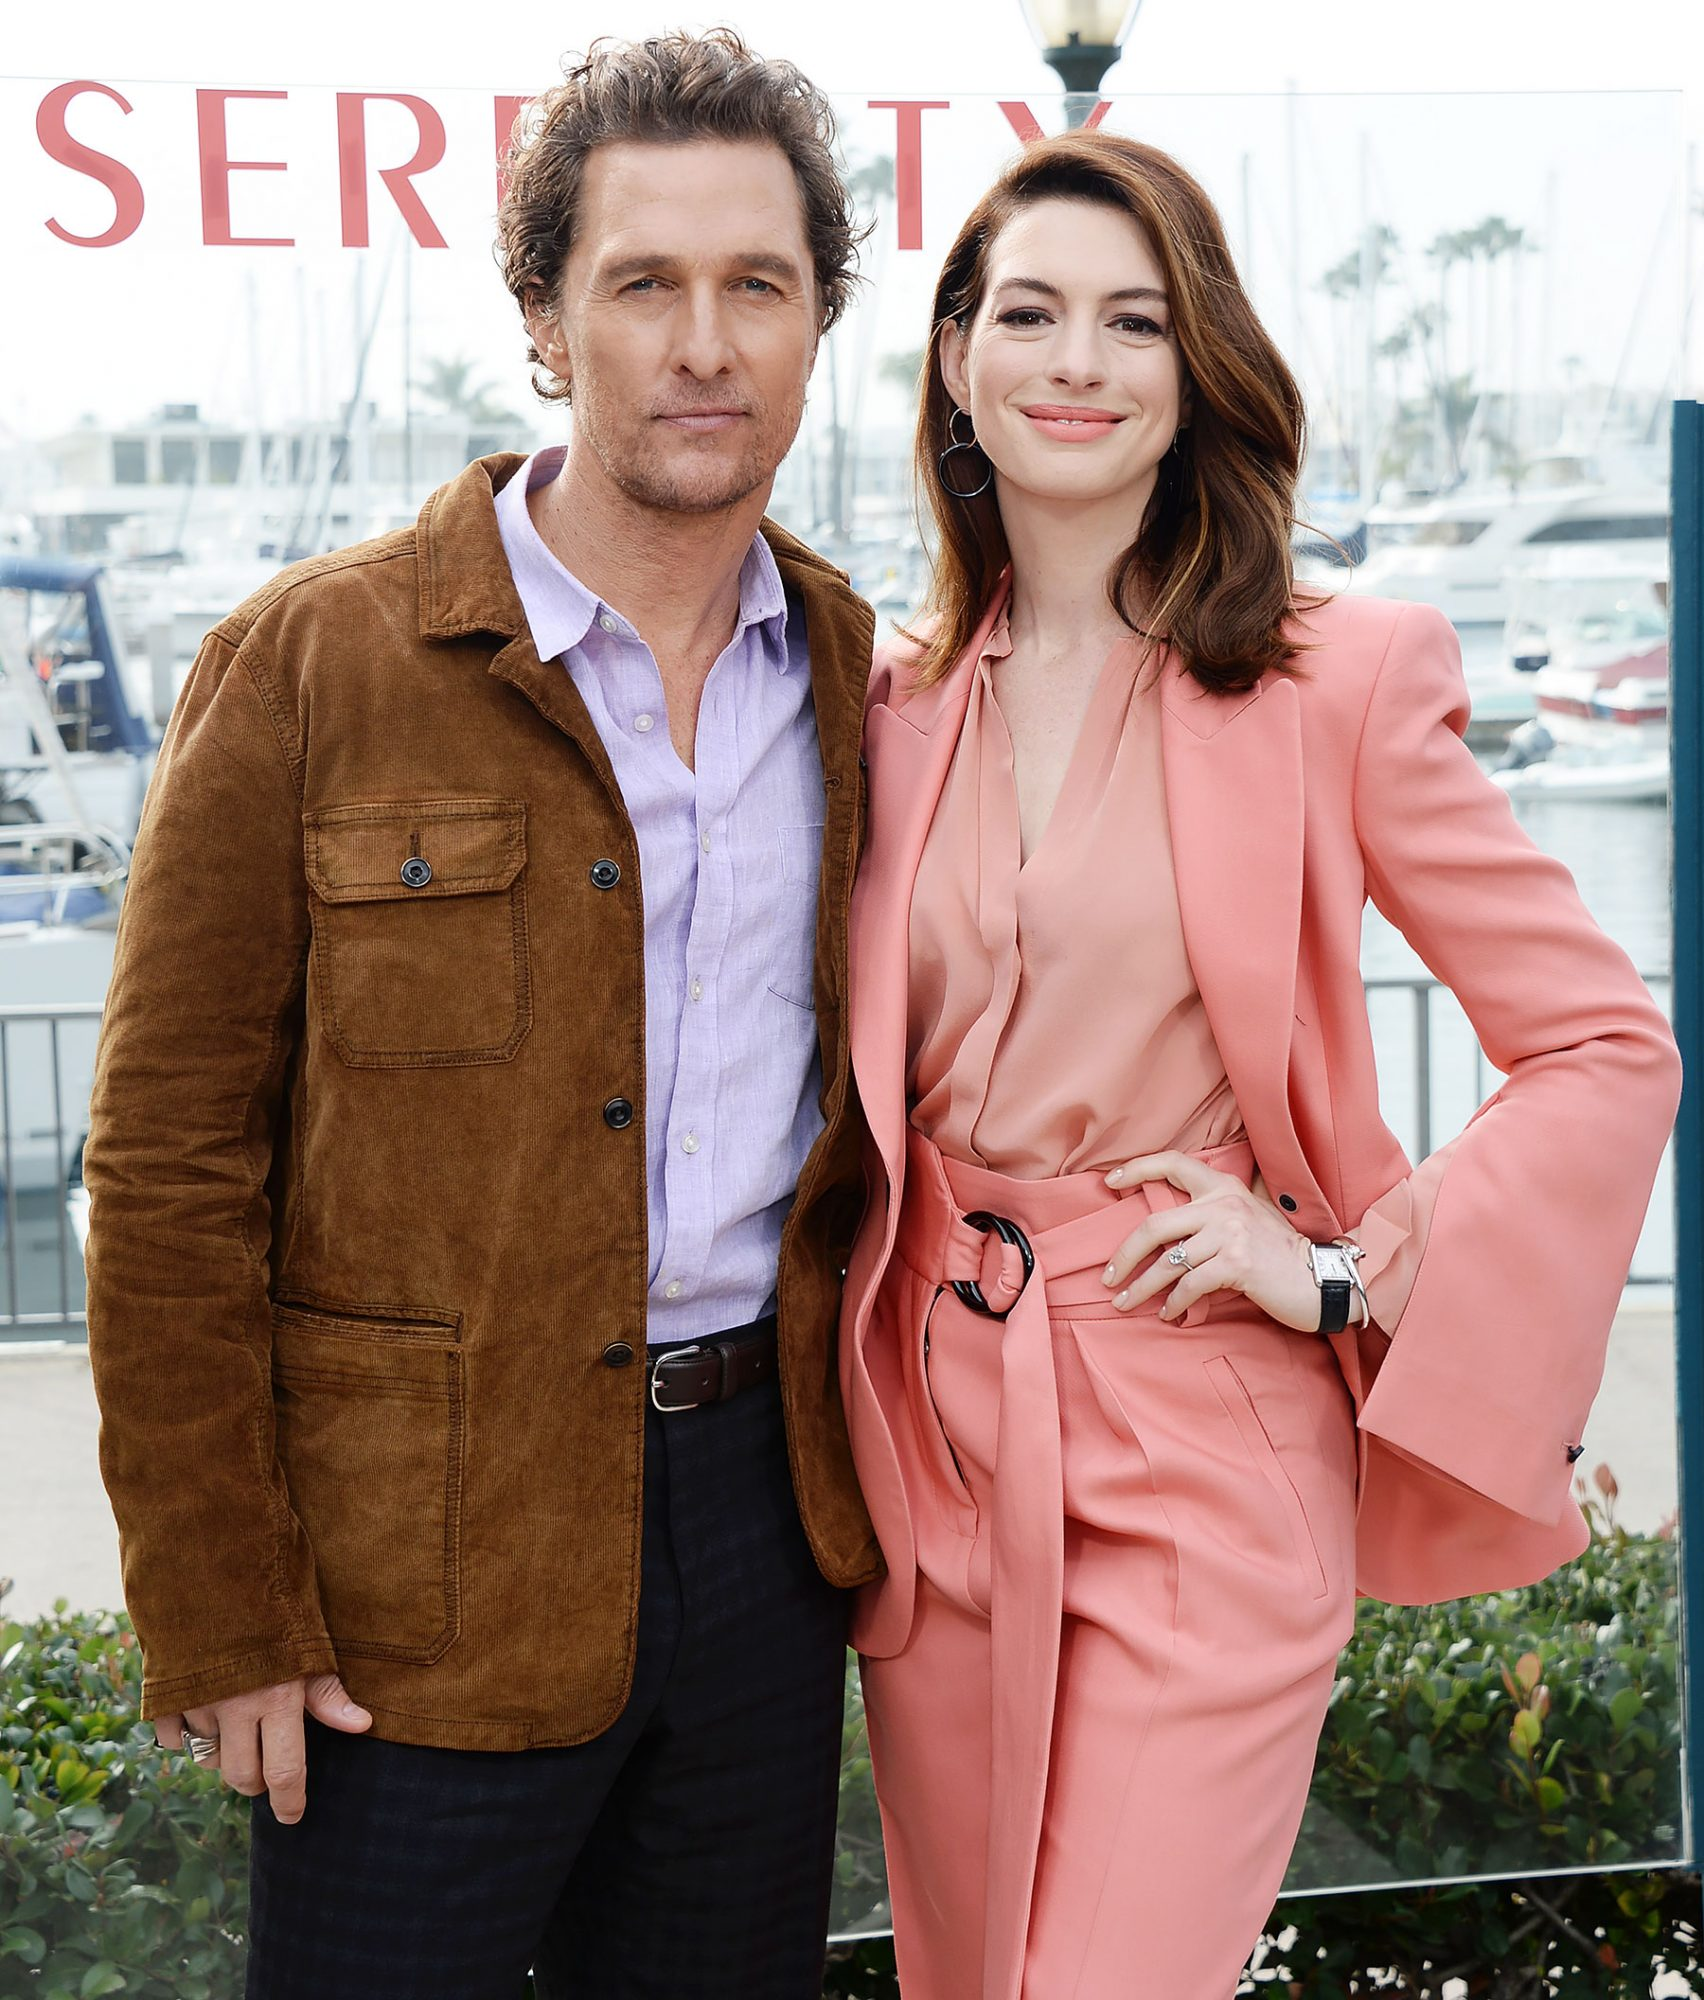 'Serenity' film photocall, Los Angeles, USA - 11 Jan 2019